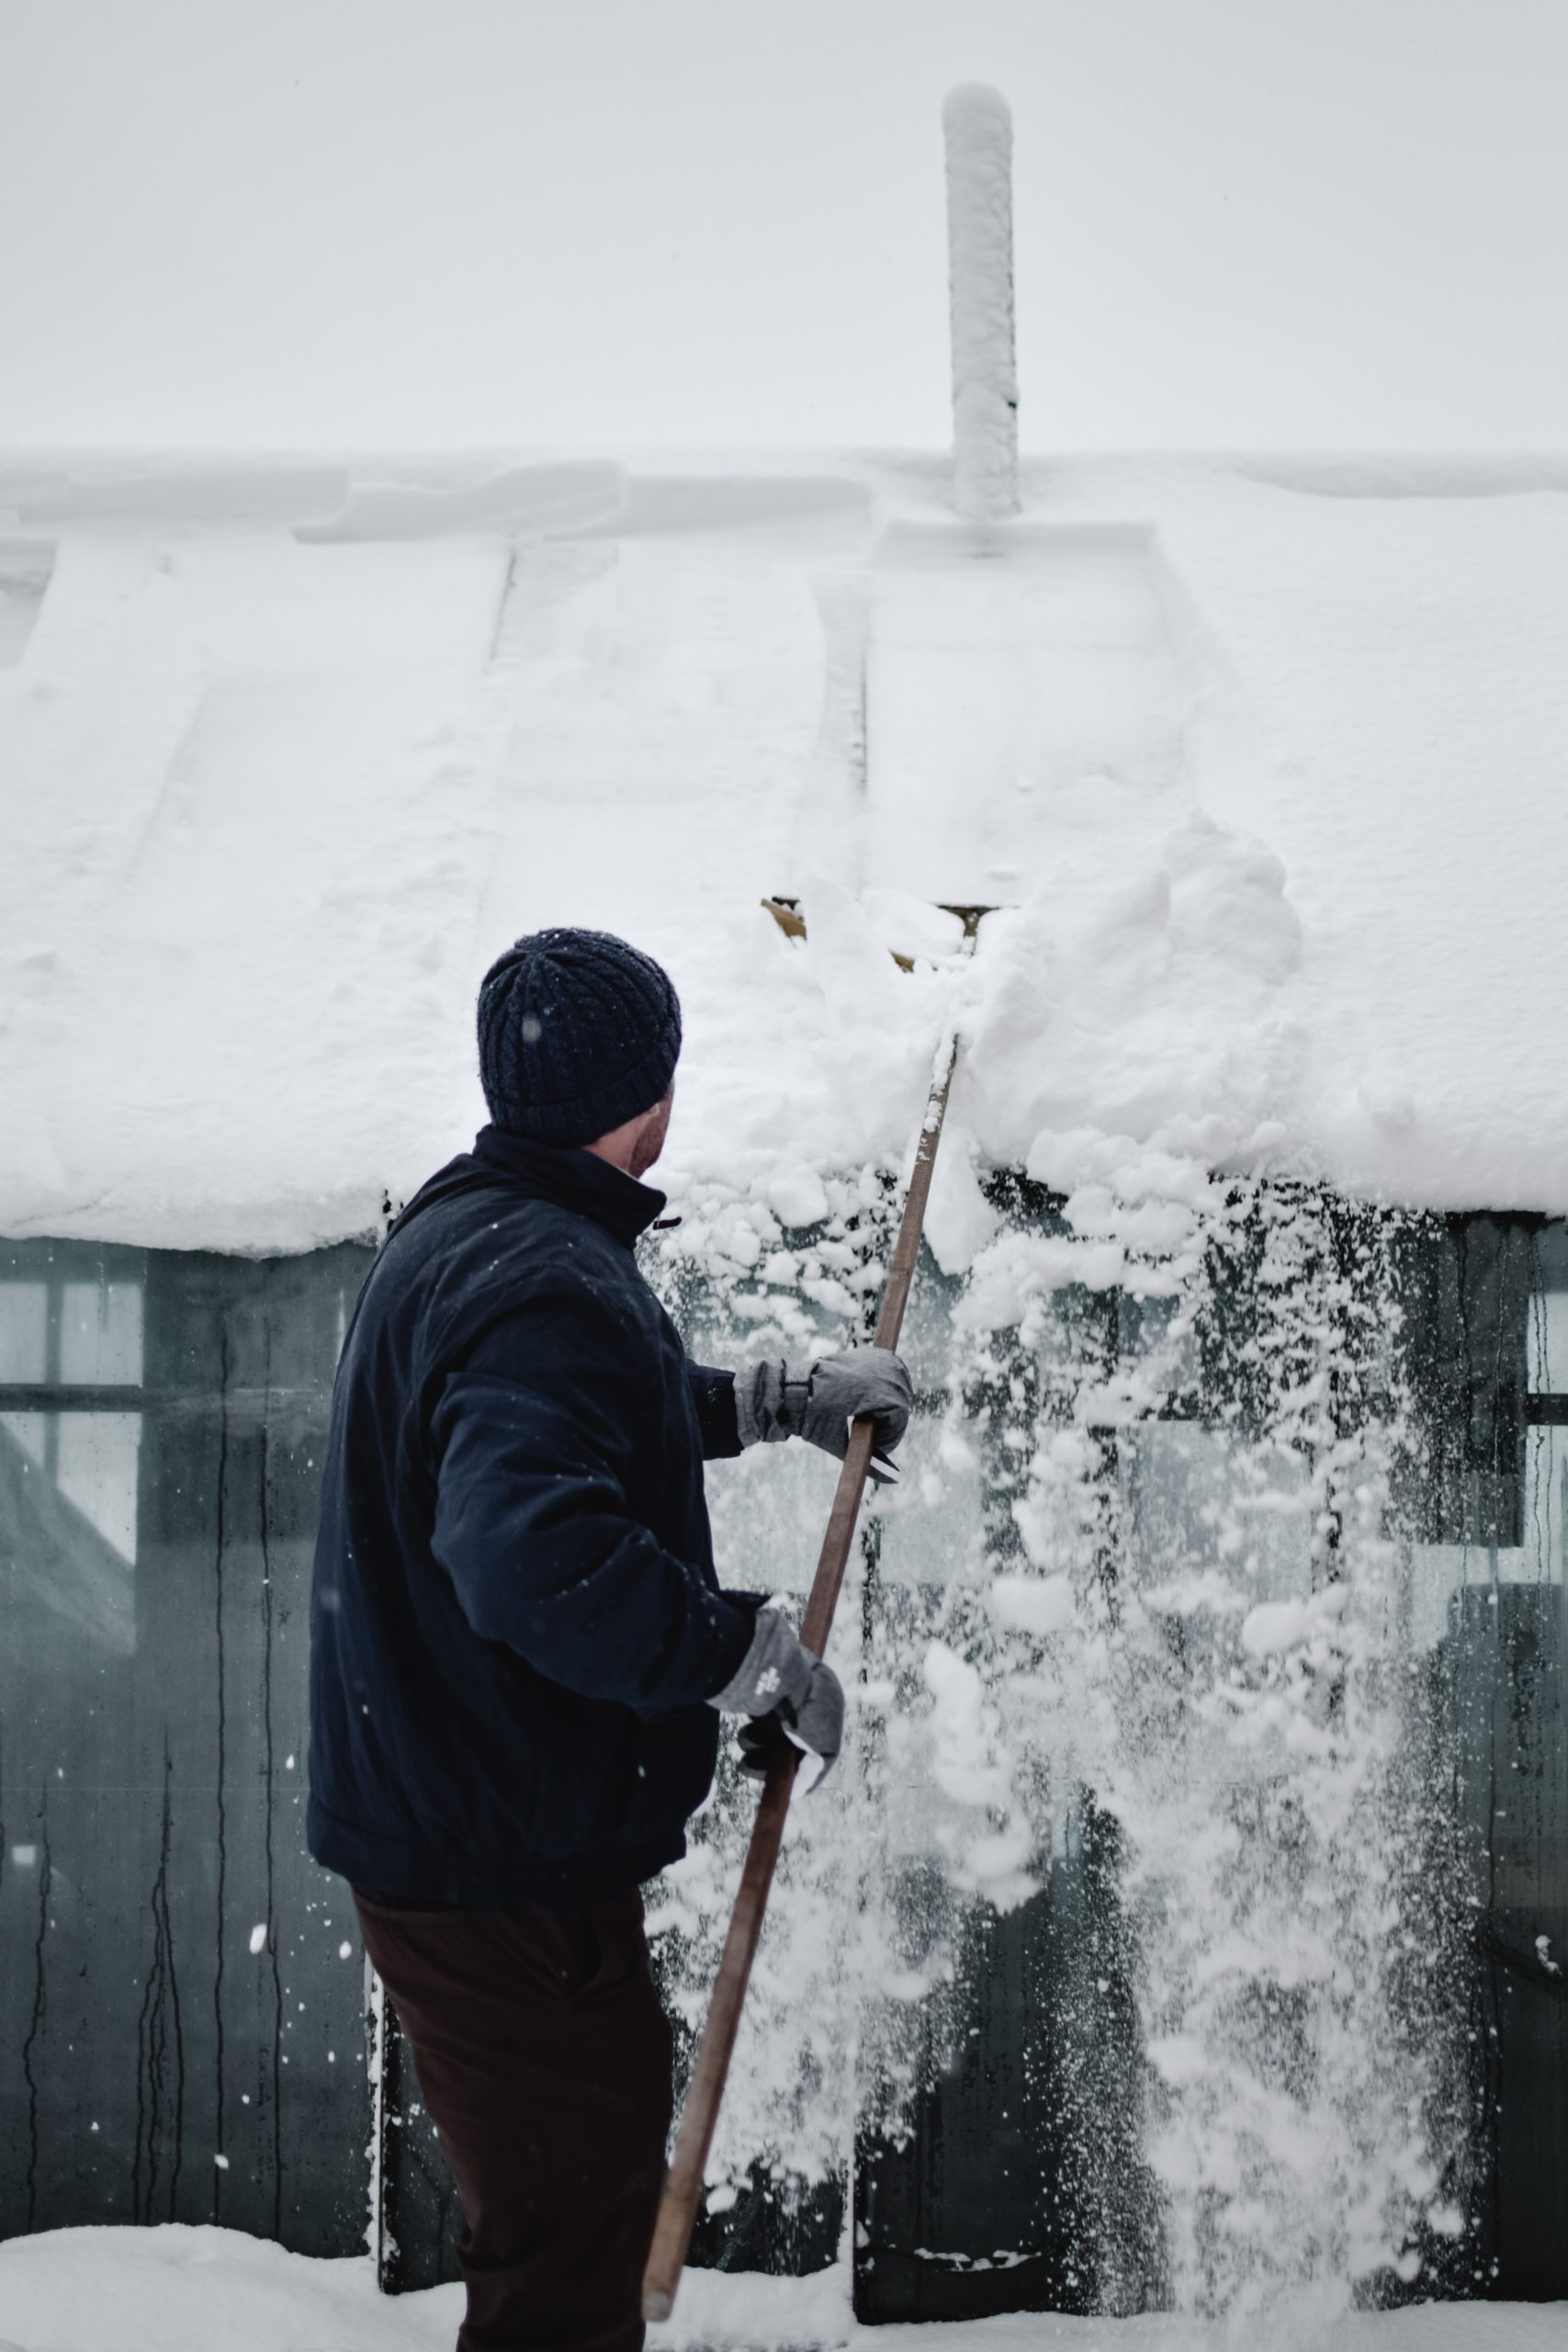 man in black coat and had brushing snow off of a shed roof in the winter